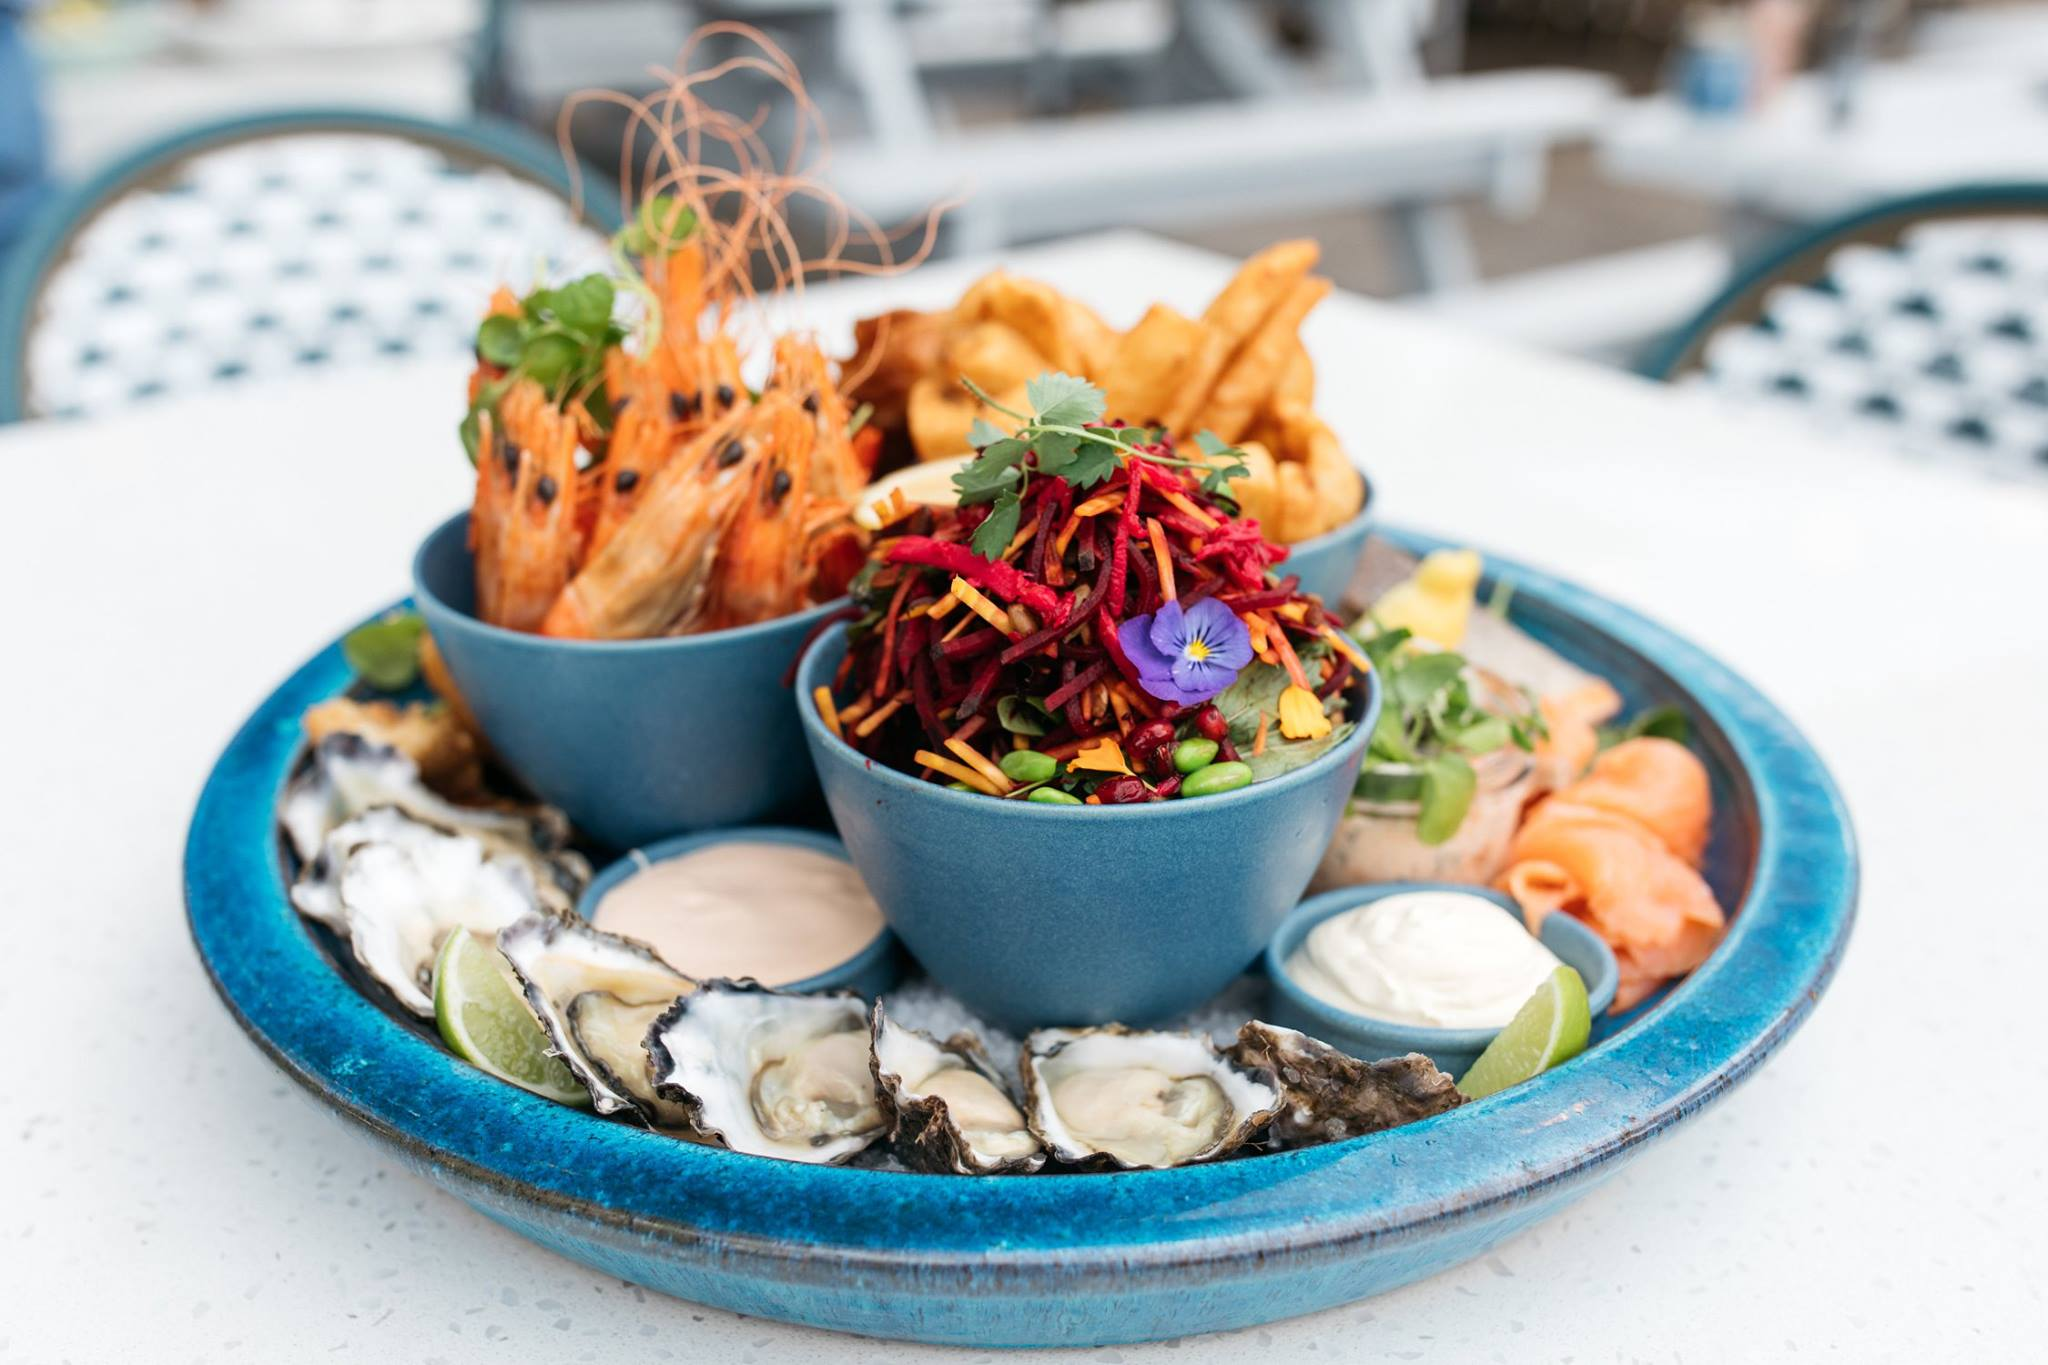 Seafood Menu at the Boathouse Hotel Restaurant Patonga